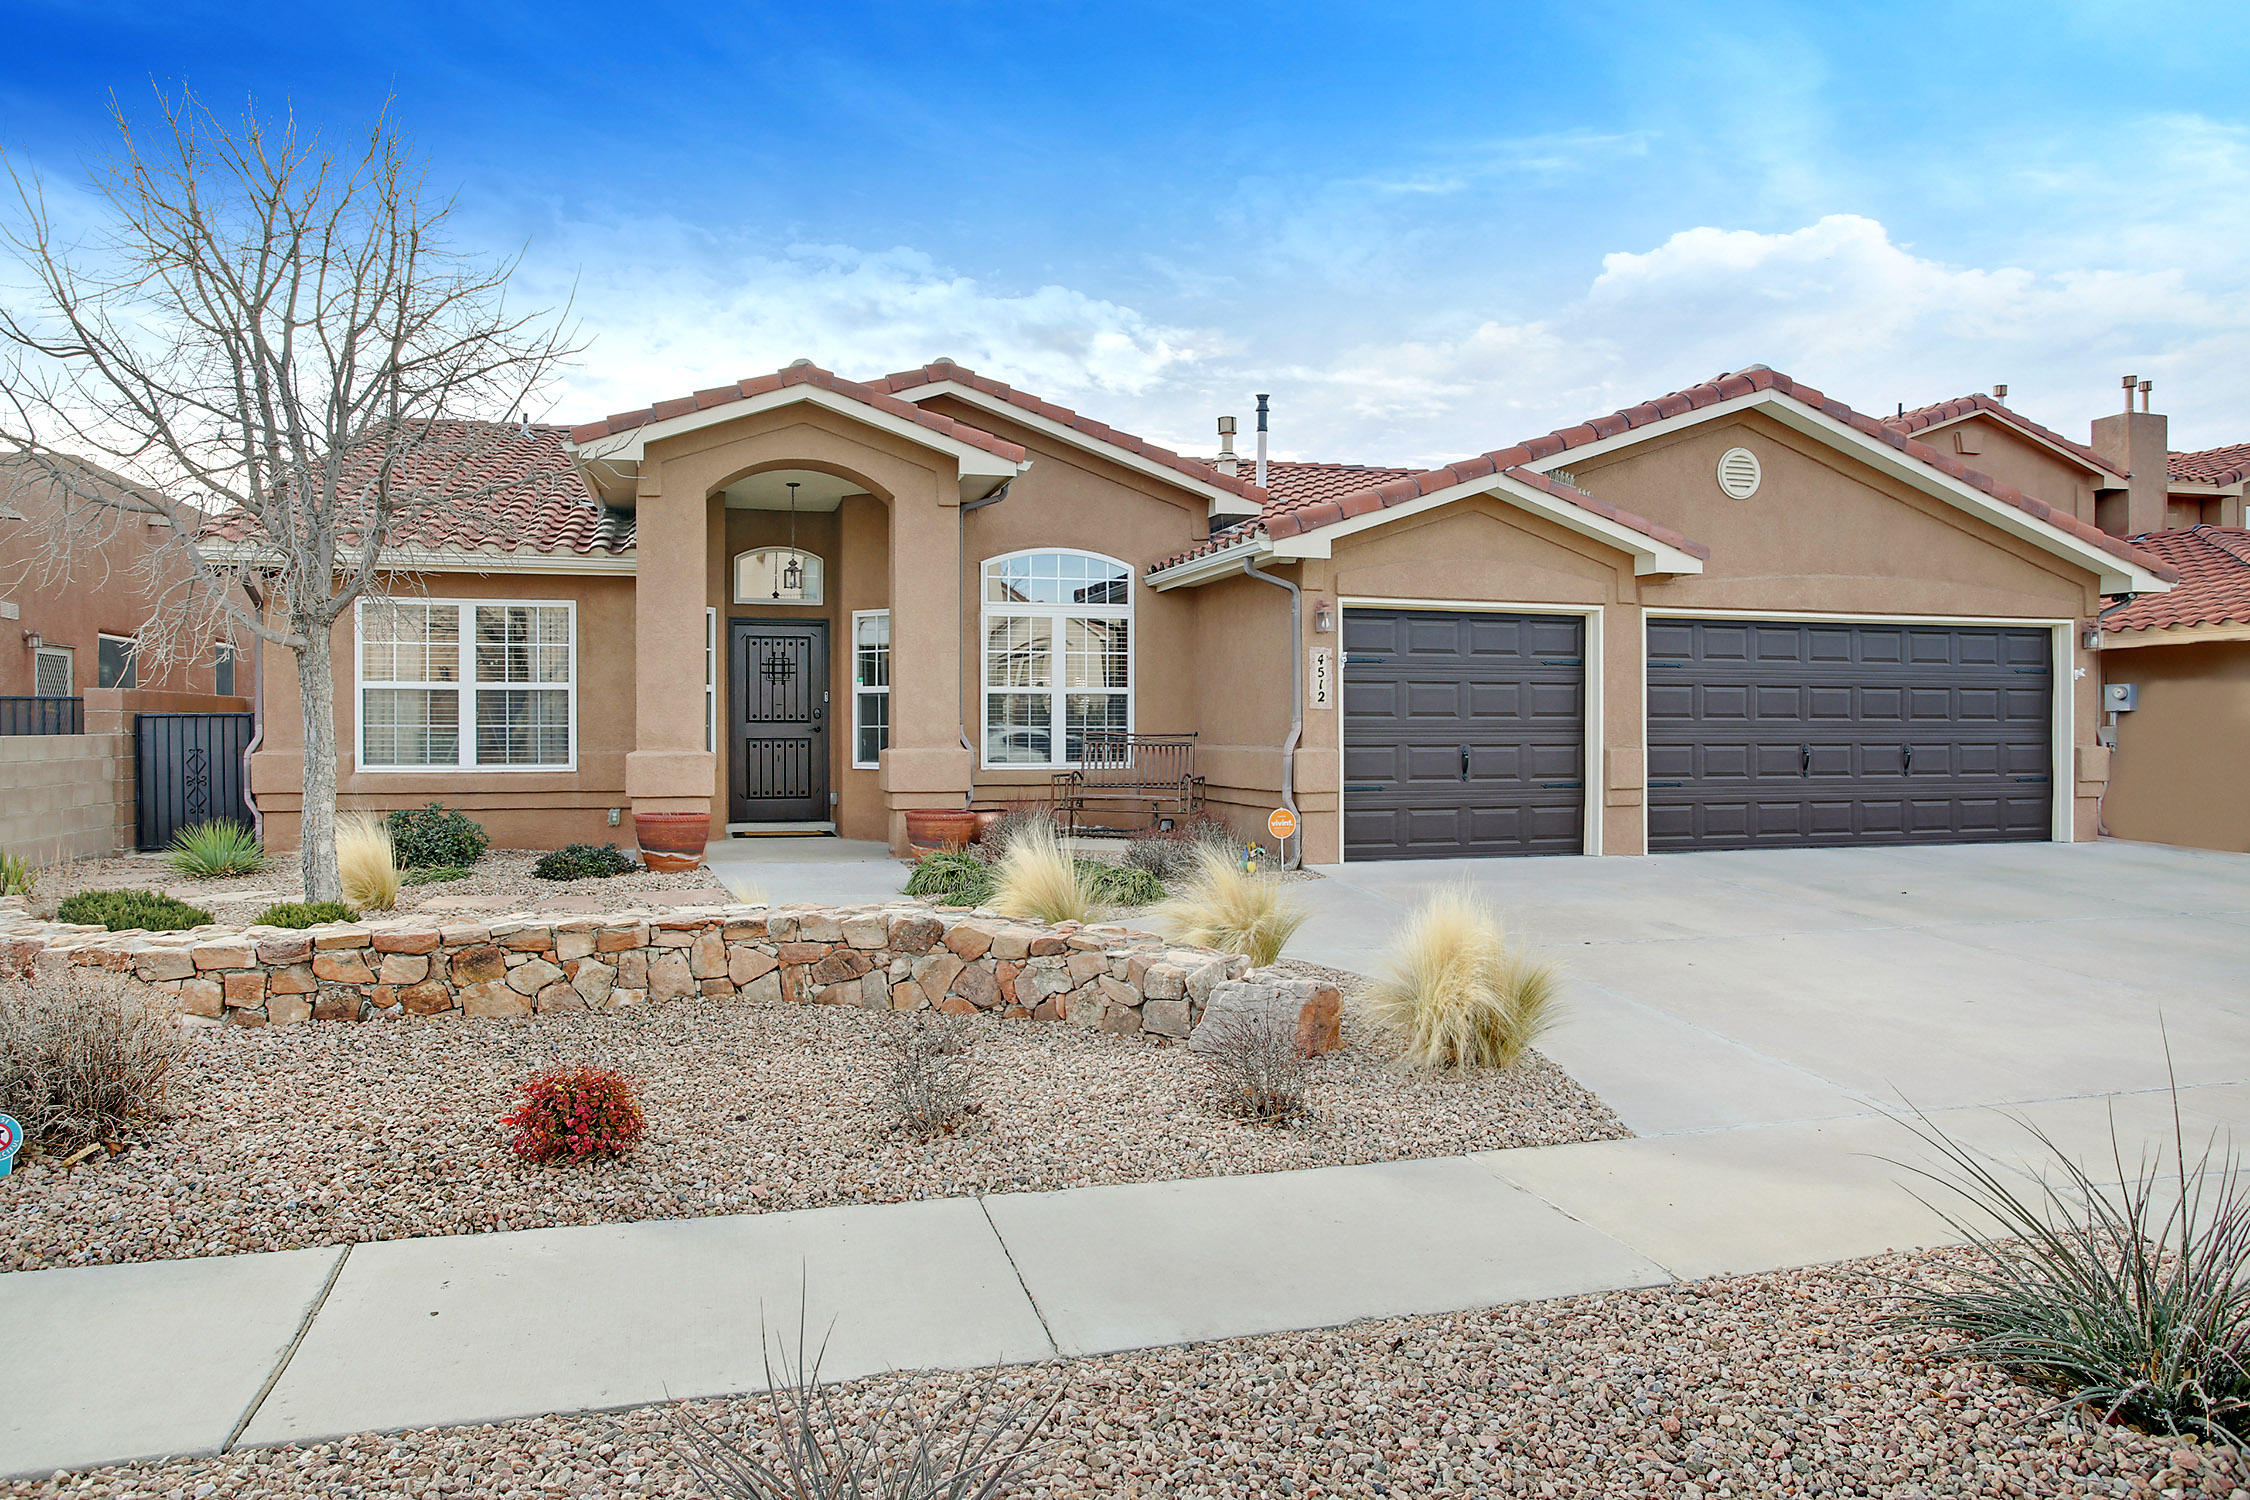 4512 CAPRI Court, Albuquerque NM 87114